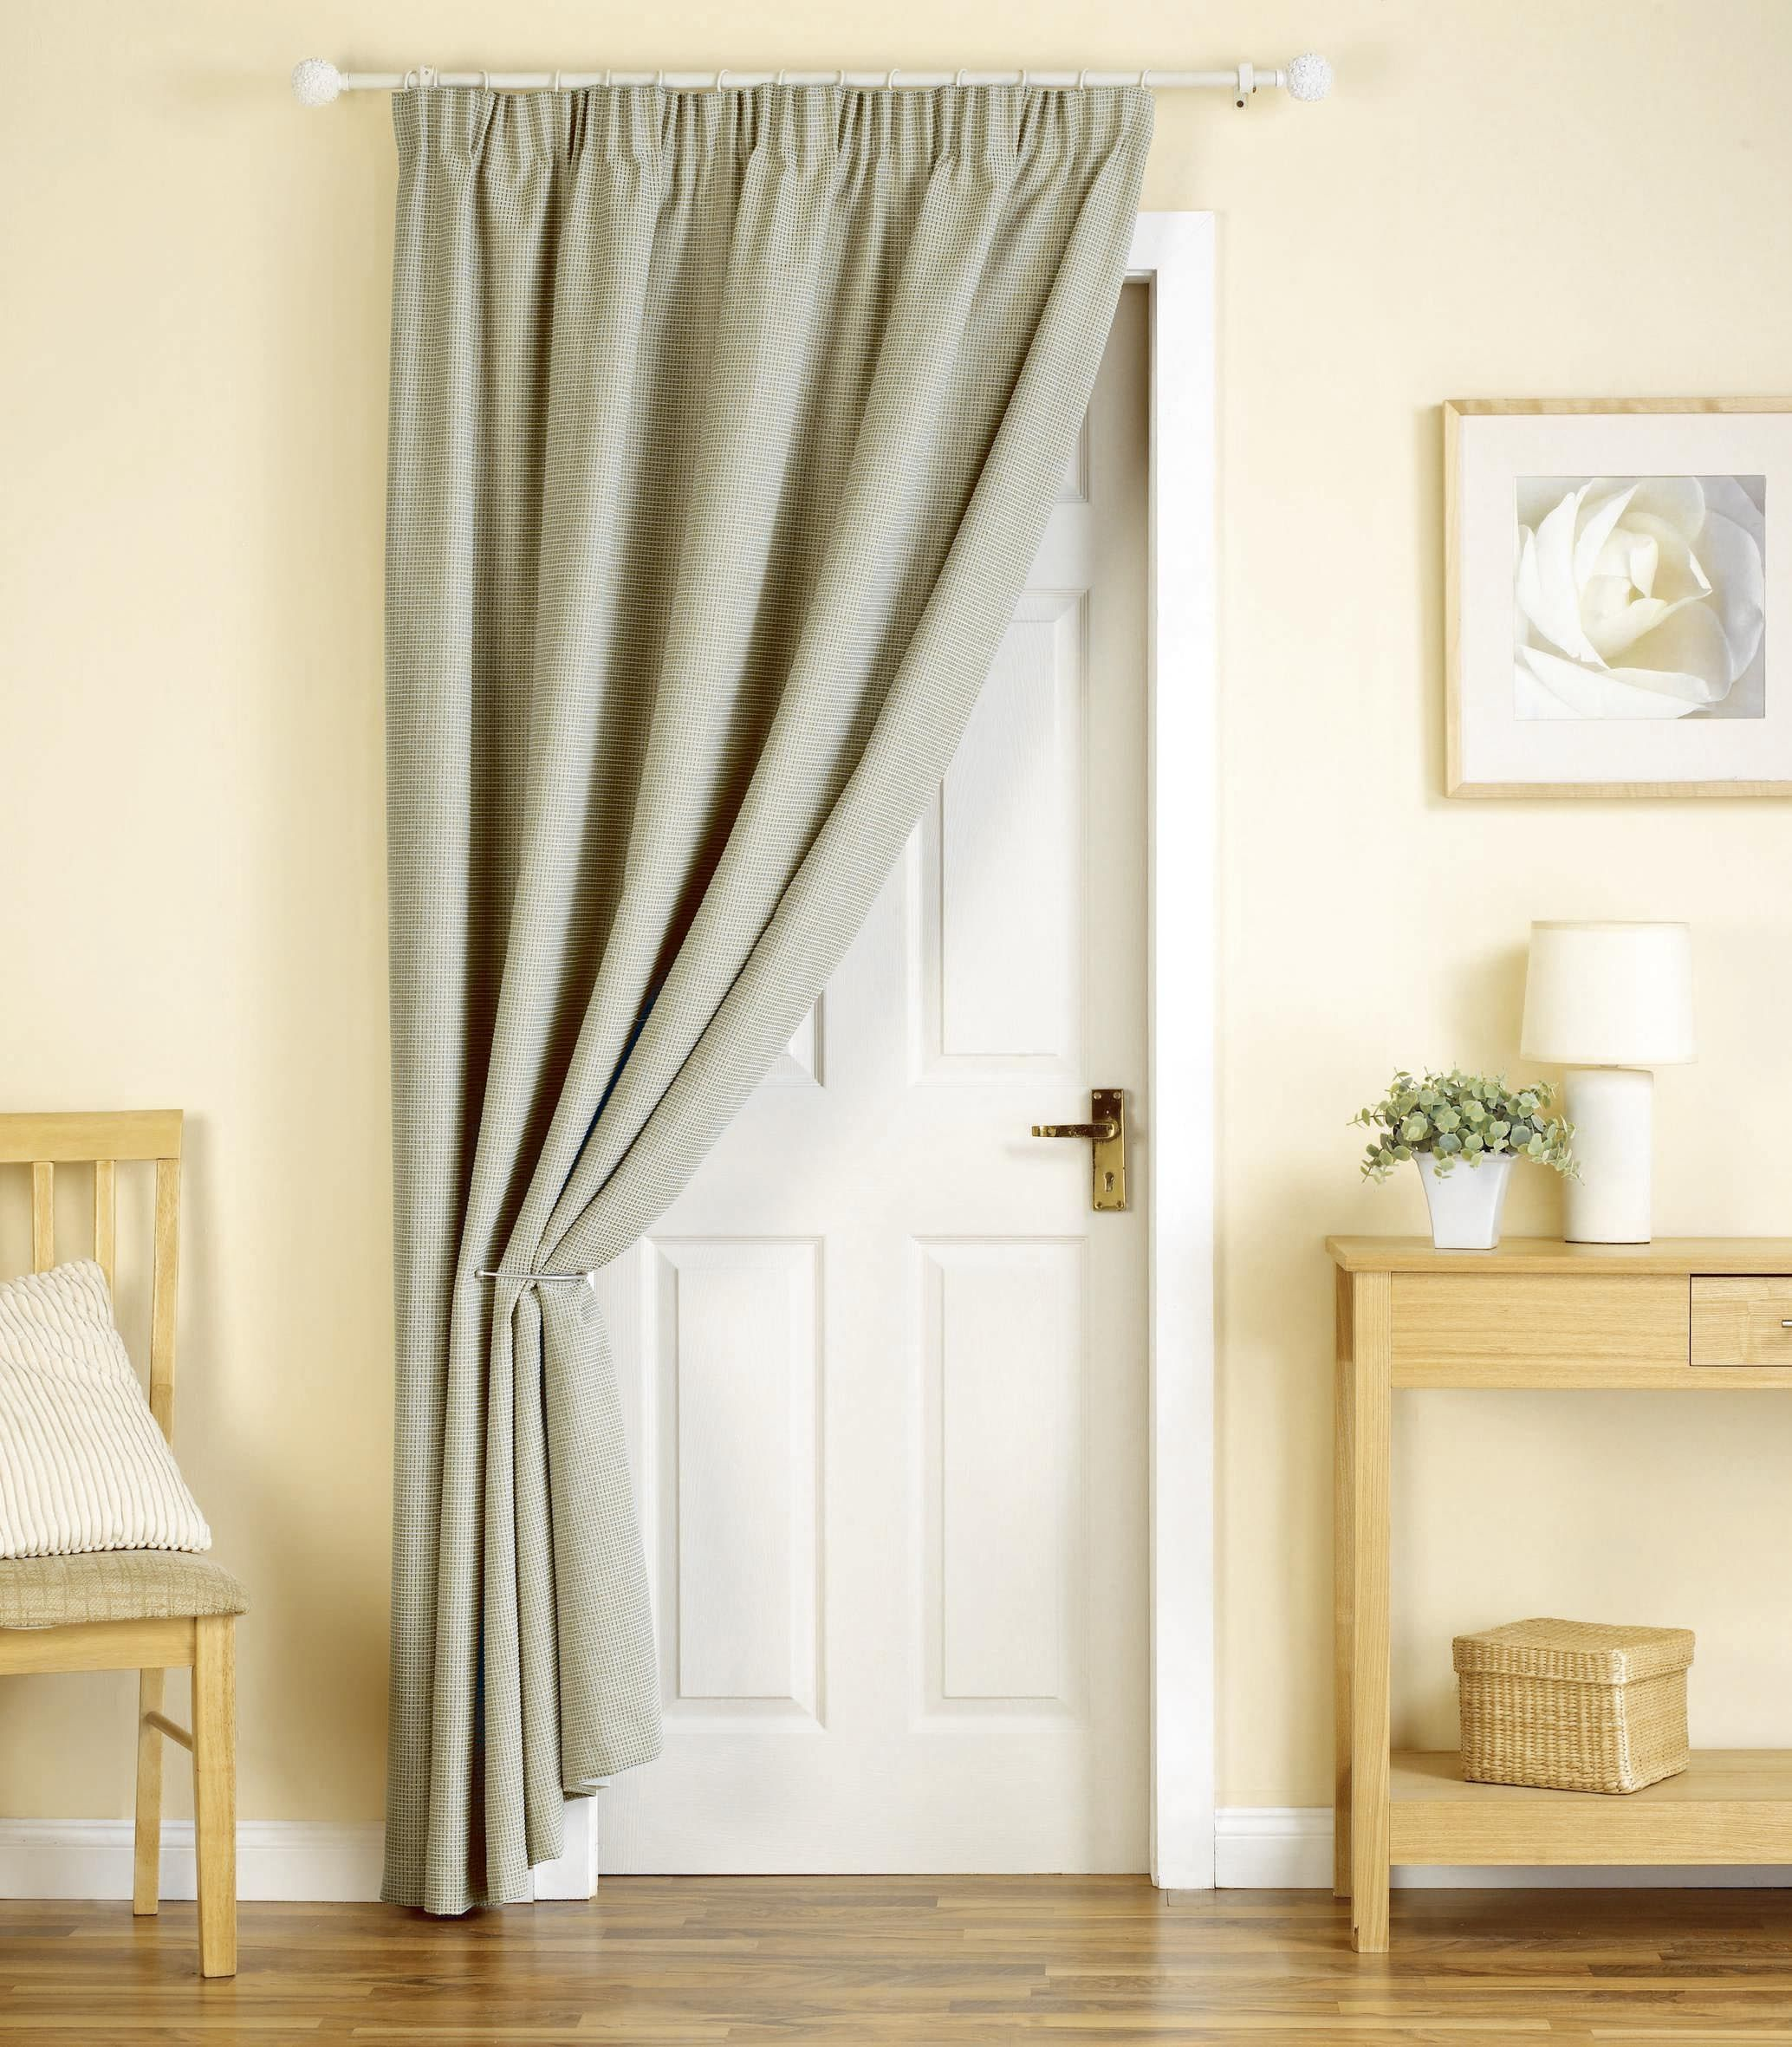 Where Can I Find Pre Move Out Curtain Cleaning Service Home